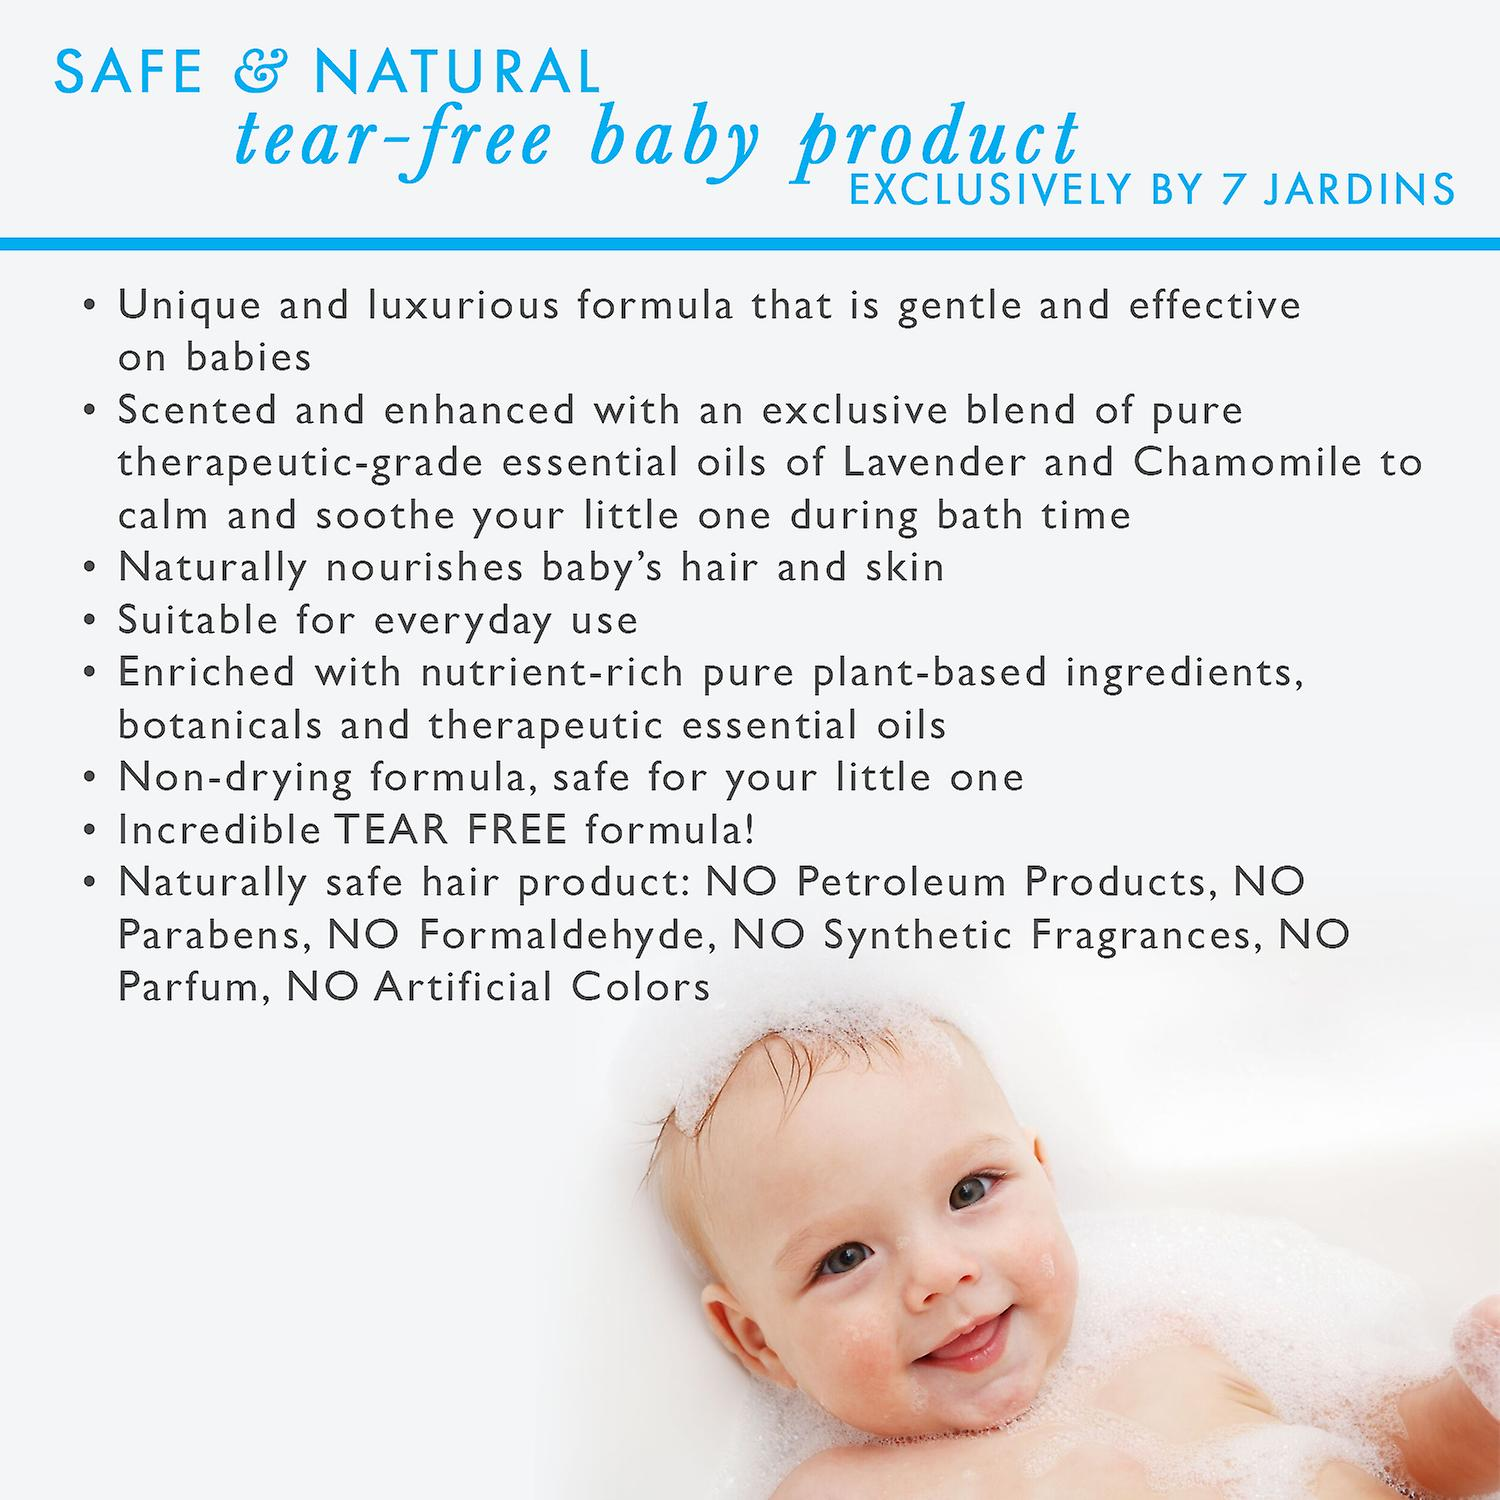 7 Jardins Natural Baby Shampoo & Body Wash - 2 in 1 Soothing for the Hair & Body Enriched with Calendula & Therapeutic Essential Oils. 8 oz. Gentle for Children of All Ages